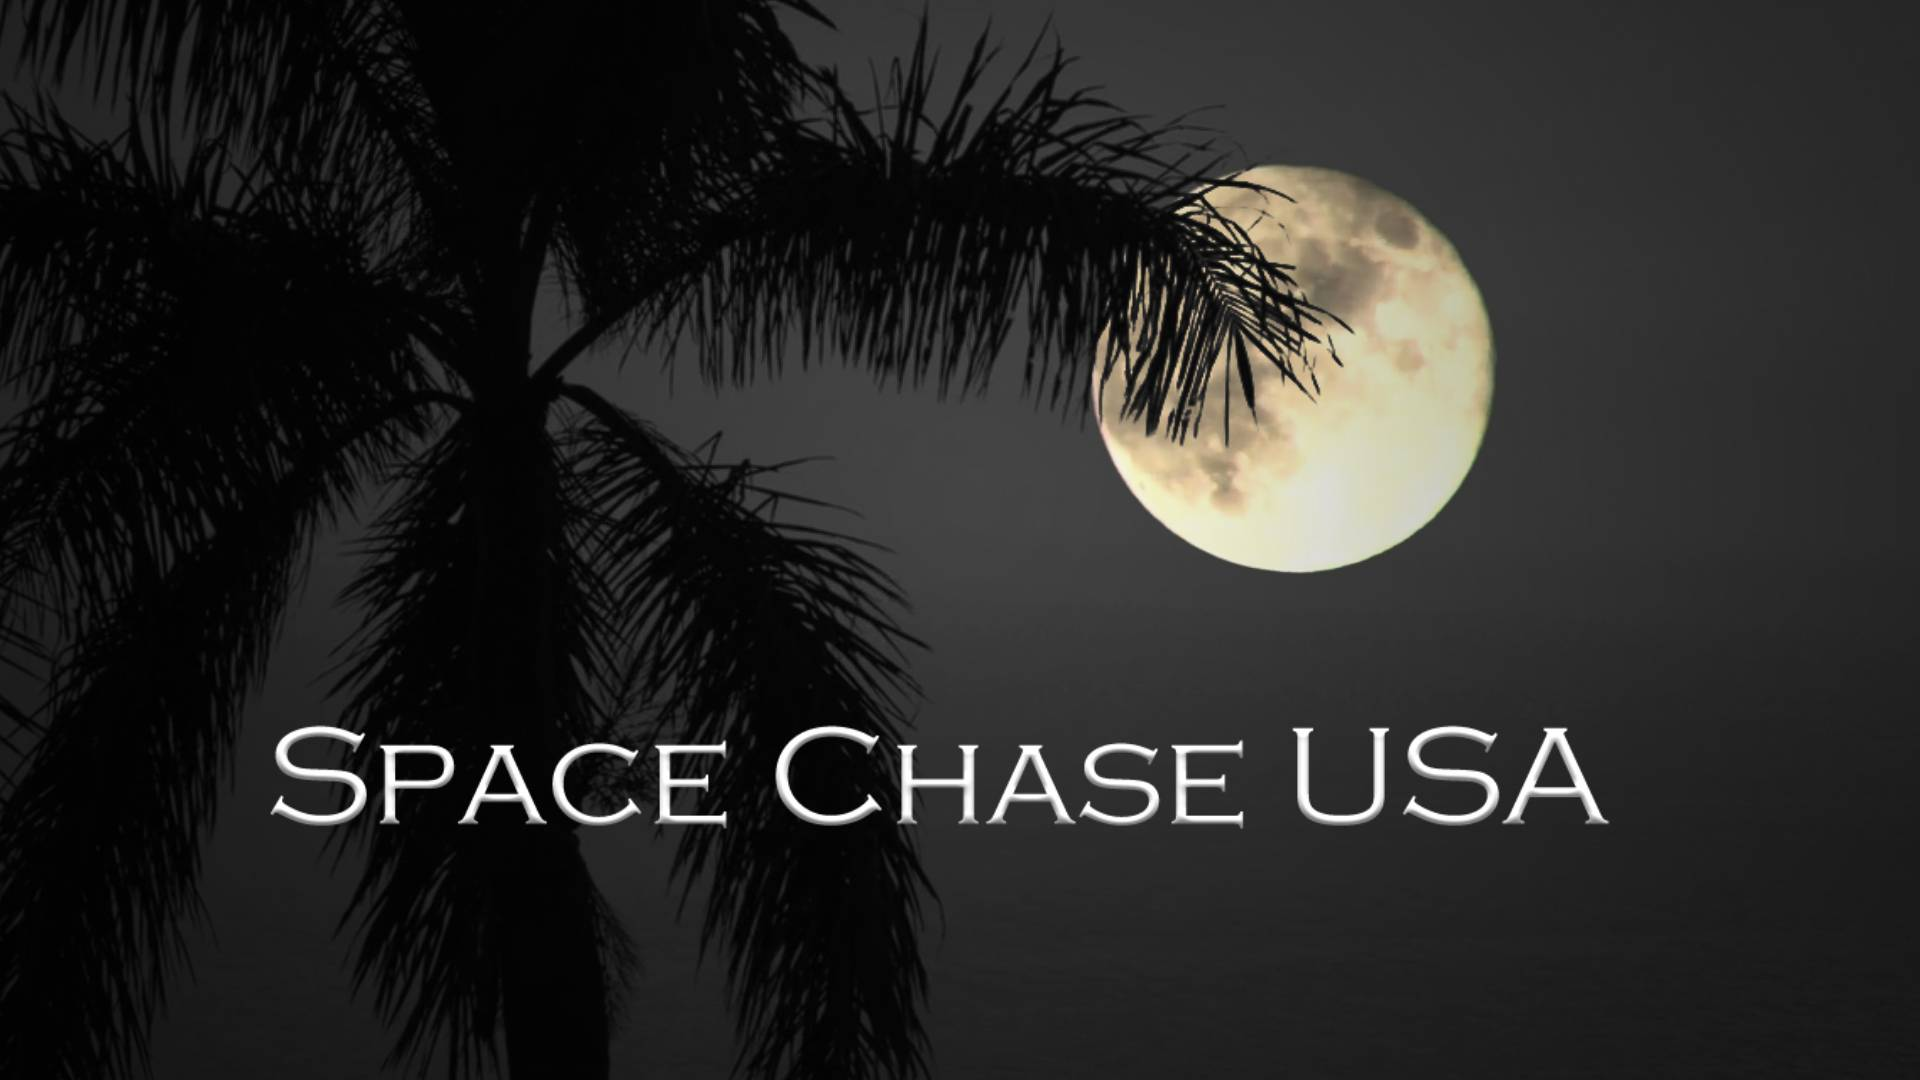 Space Chase, USA